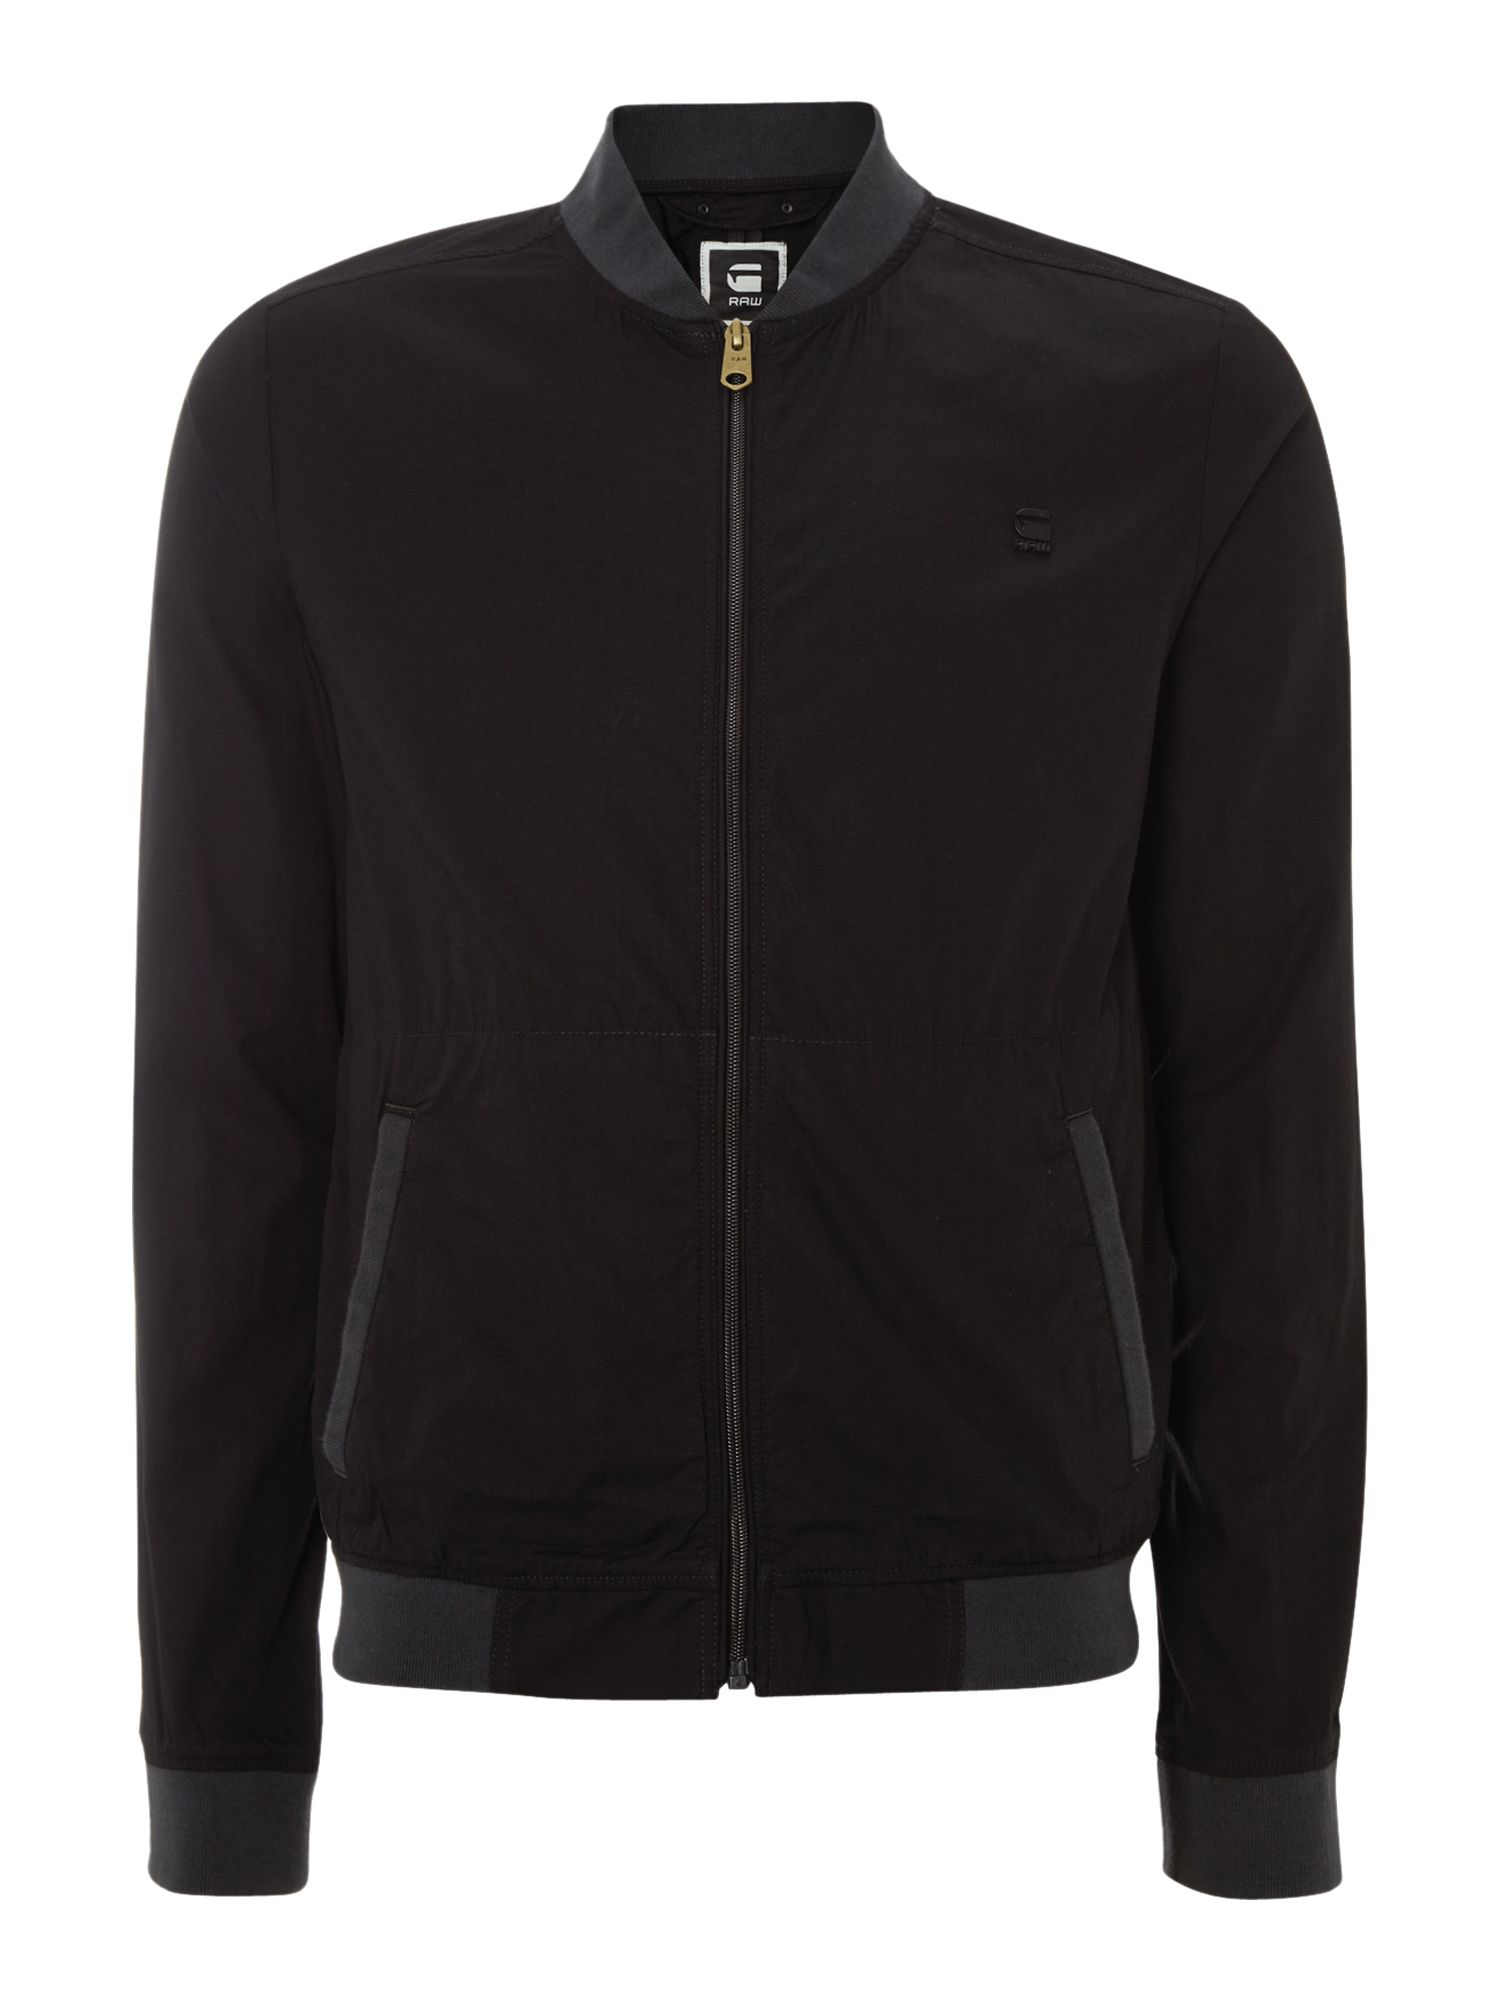 2 pocket zip up nylon bomber